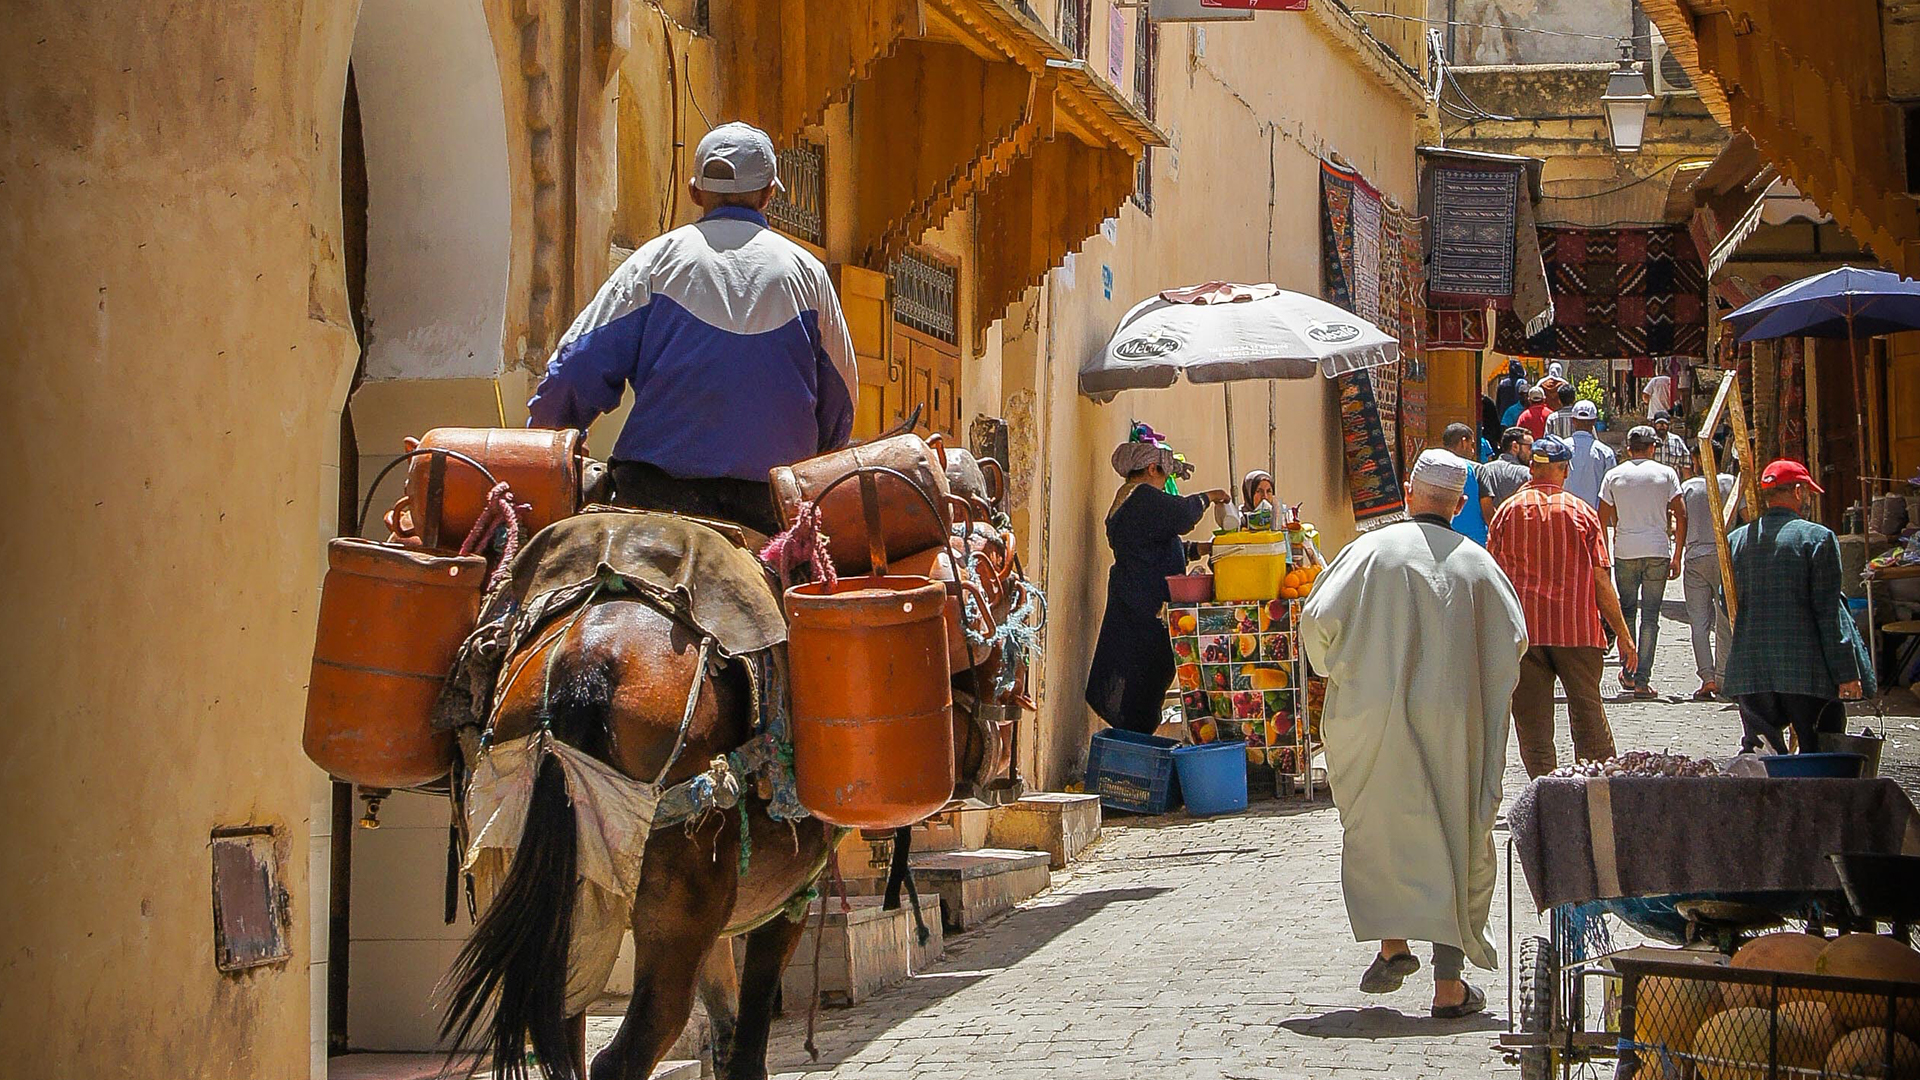 A merchant bringing his wares to market in Marrakech